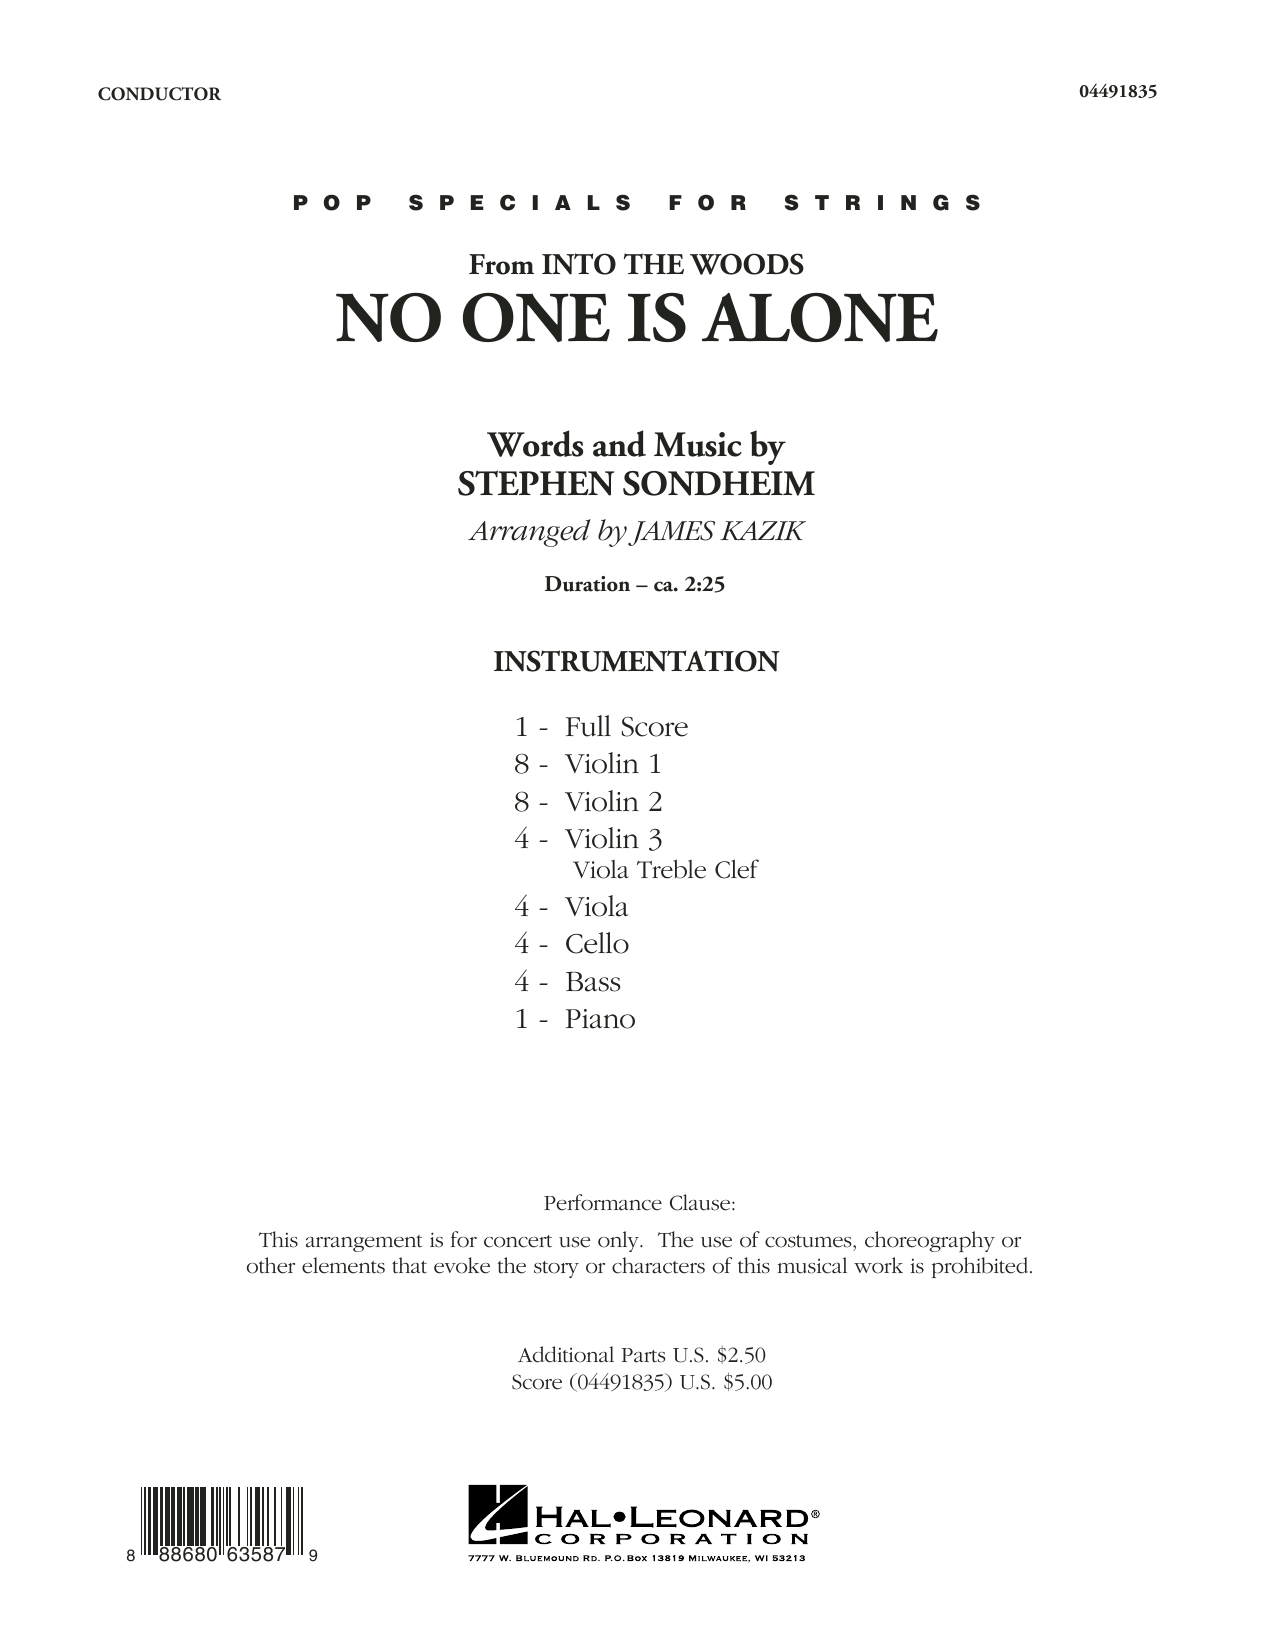 No One Is Alone (from Into The Woods) - Conductor Score (Full Score) Sheet Music